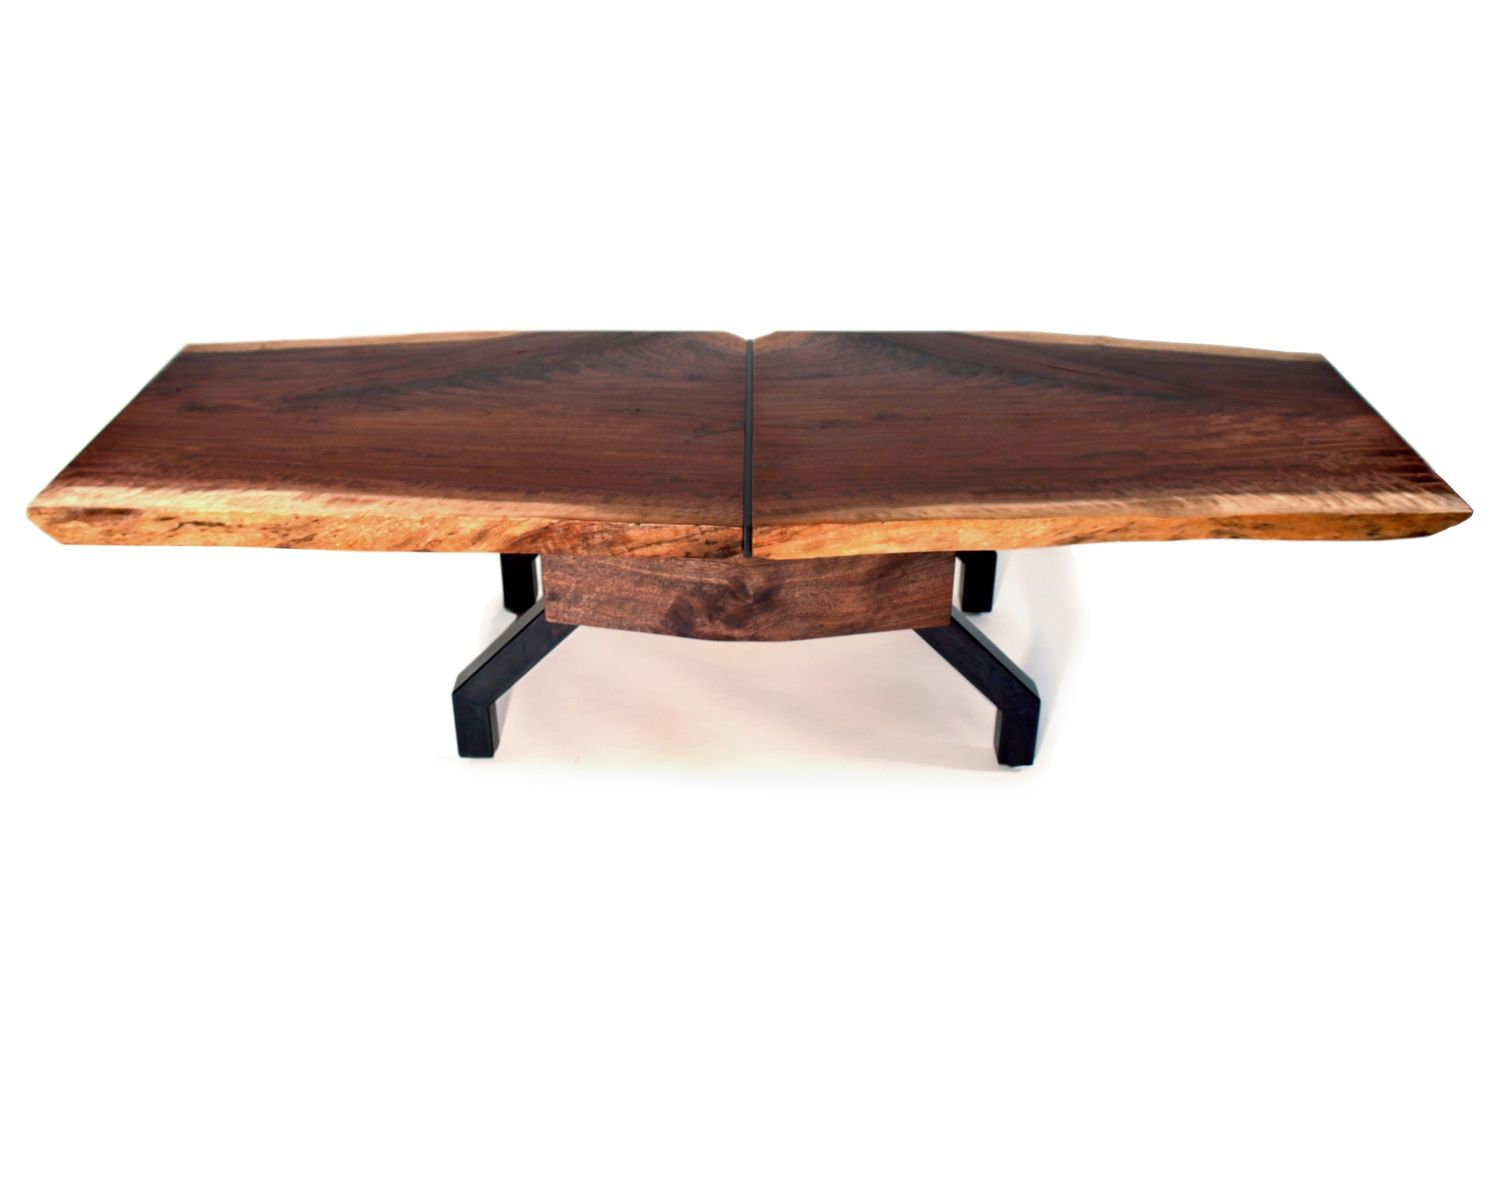 Sculptural Coffee Tables Buy A Hand Made Sculptural Coffee Table Organic Live